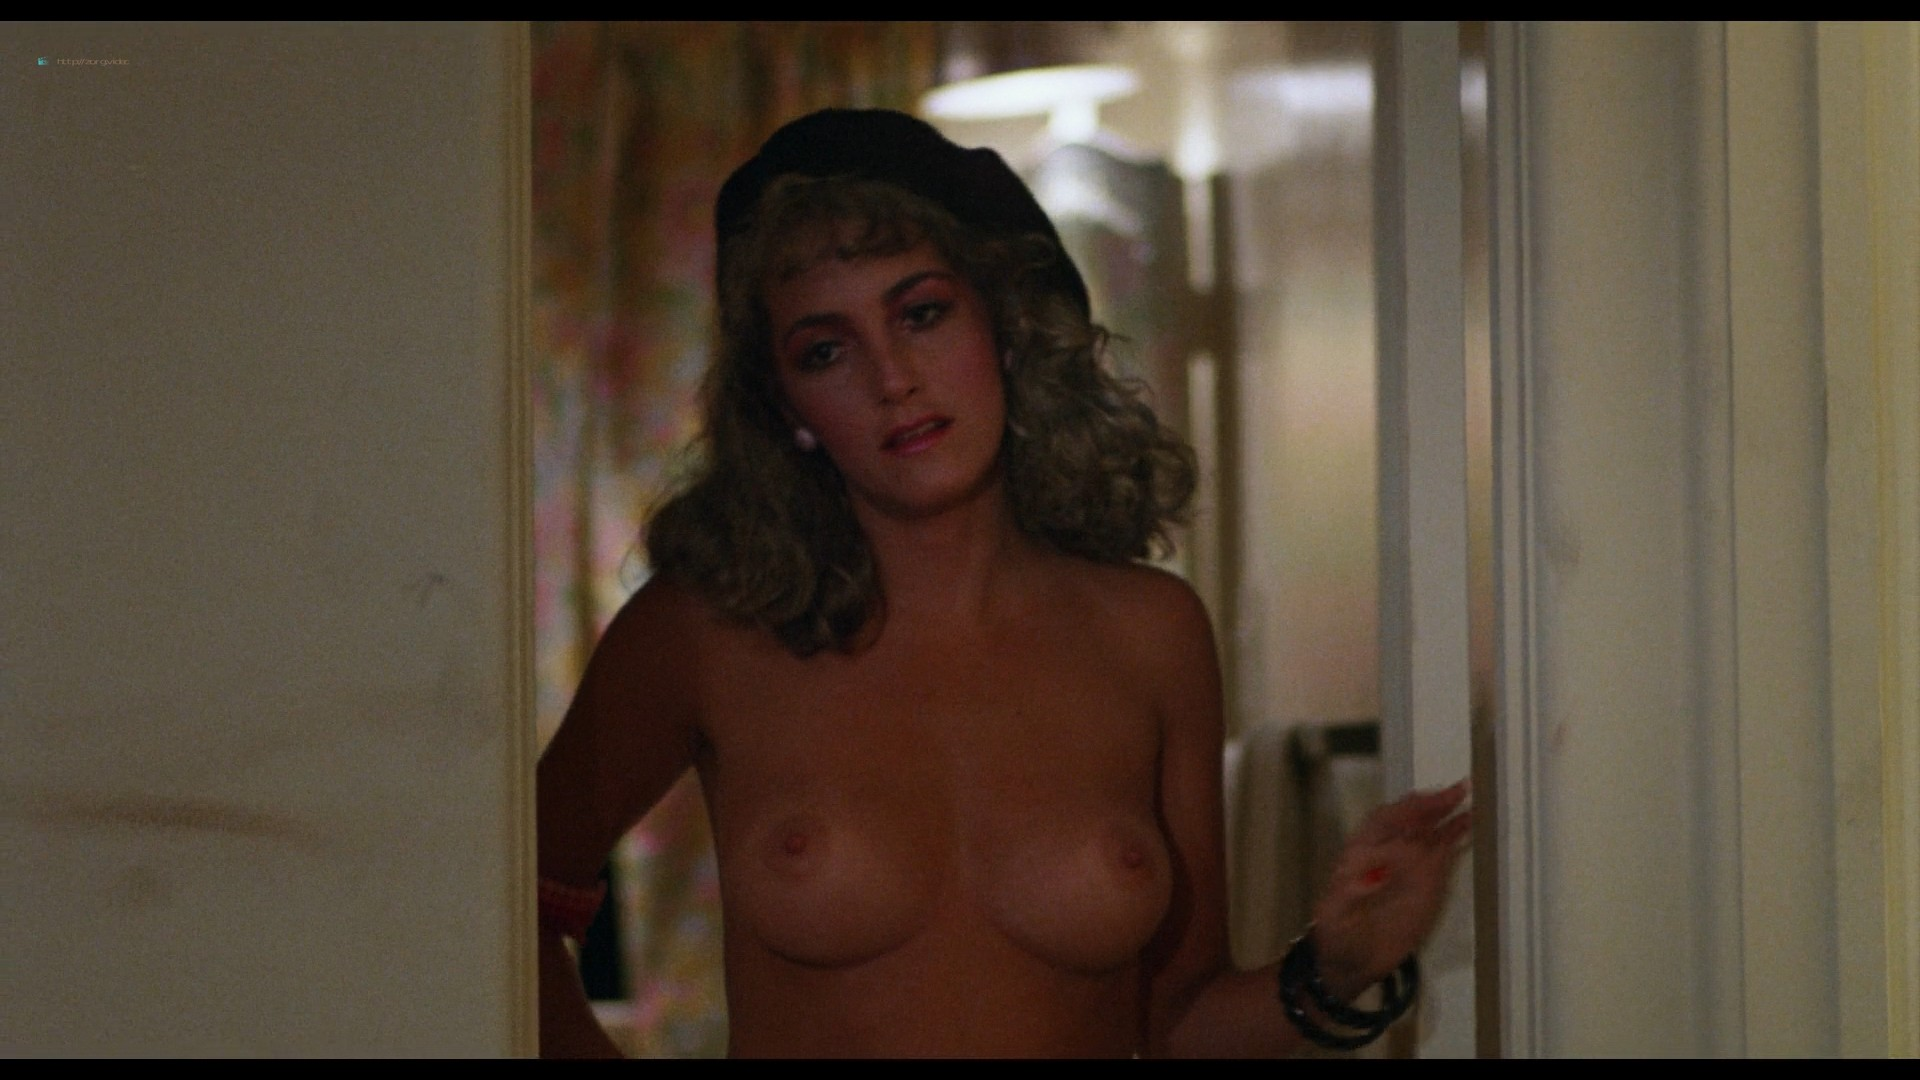 Graem McGavin nude Donna McDaniel and other's nude full frontal - Angel (1983) HD1080p BluRay (13)